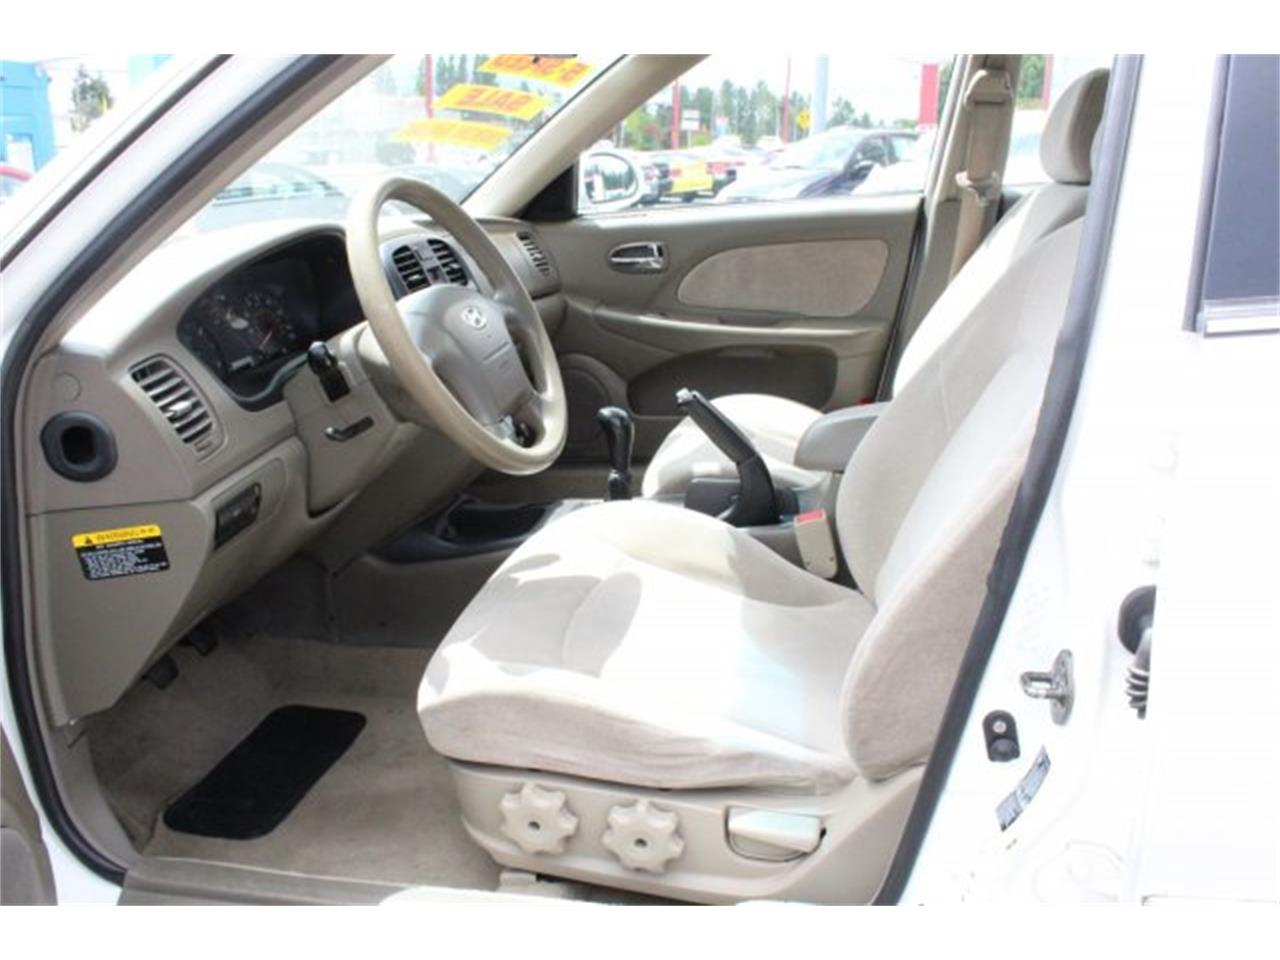 Large Picture of '05 Sonata located in Washington - $4,995.00 Offered by Carson Cars - JJGU